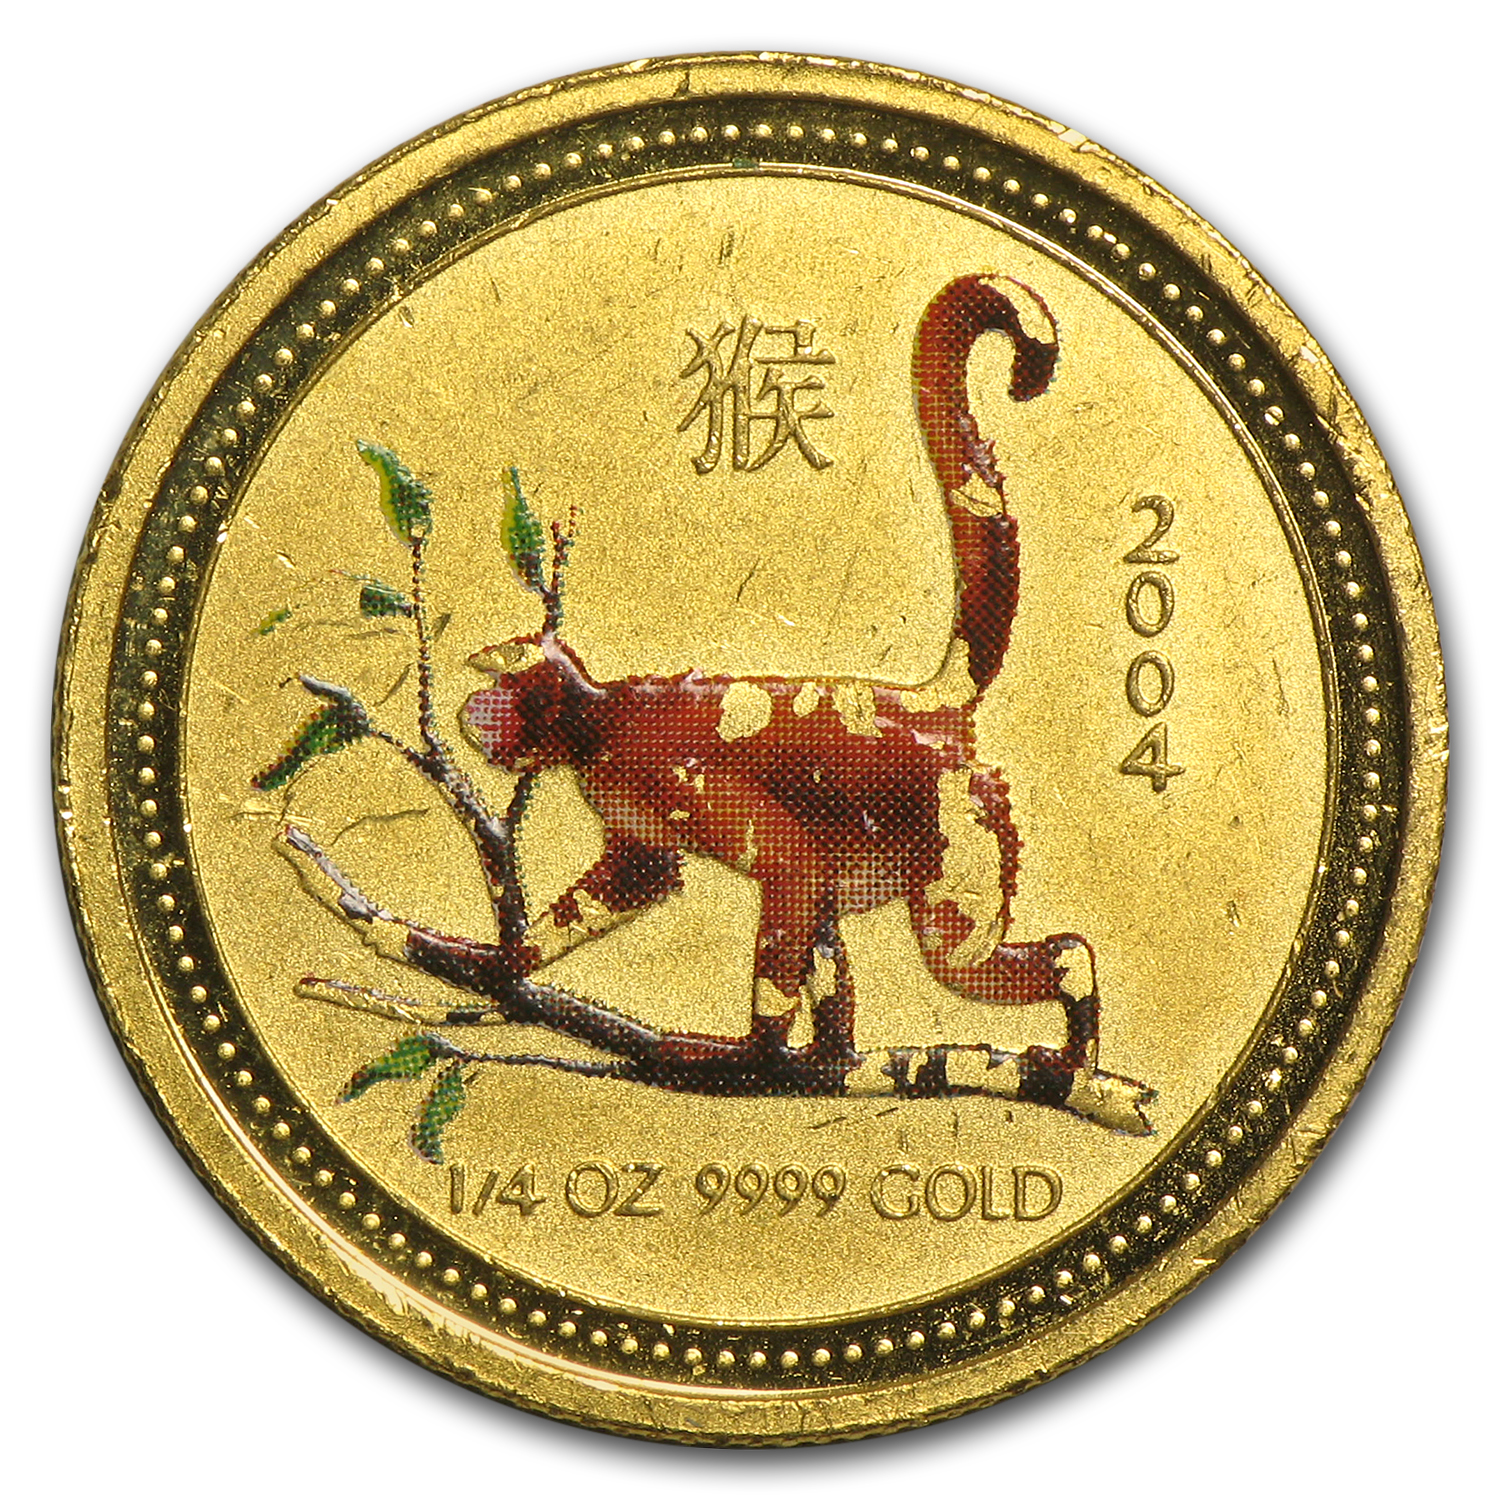 2004 1/4 oz Gold Lunar Year of the Monkey (Colorized, Abrasions)